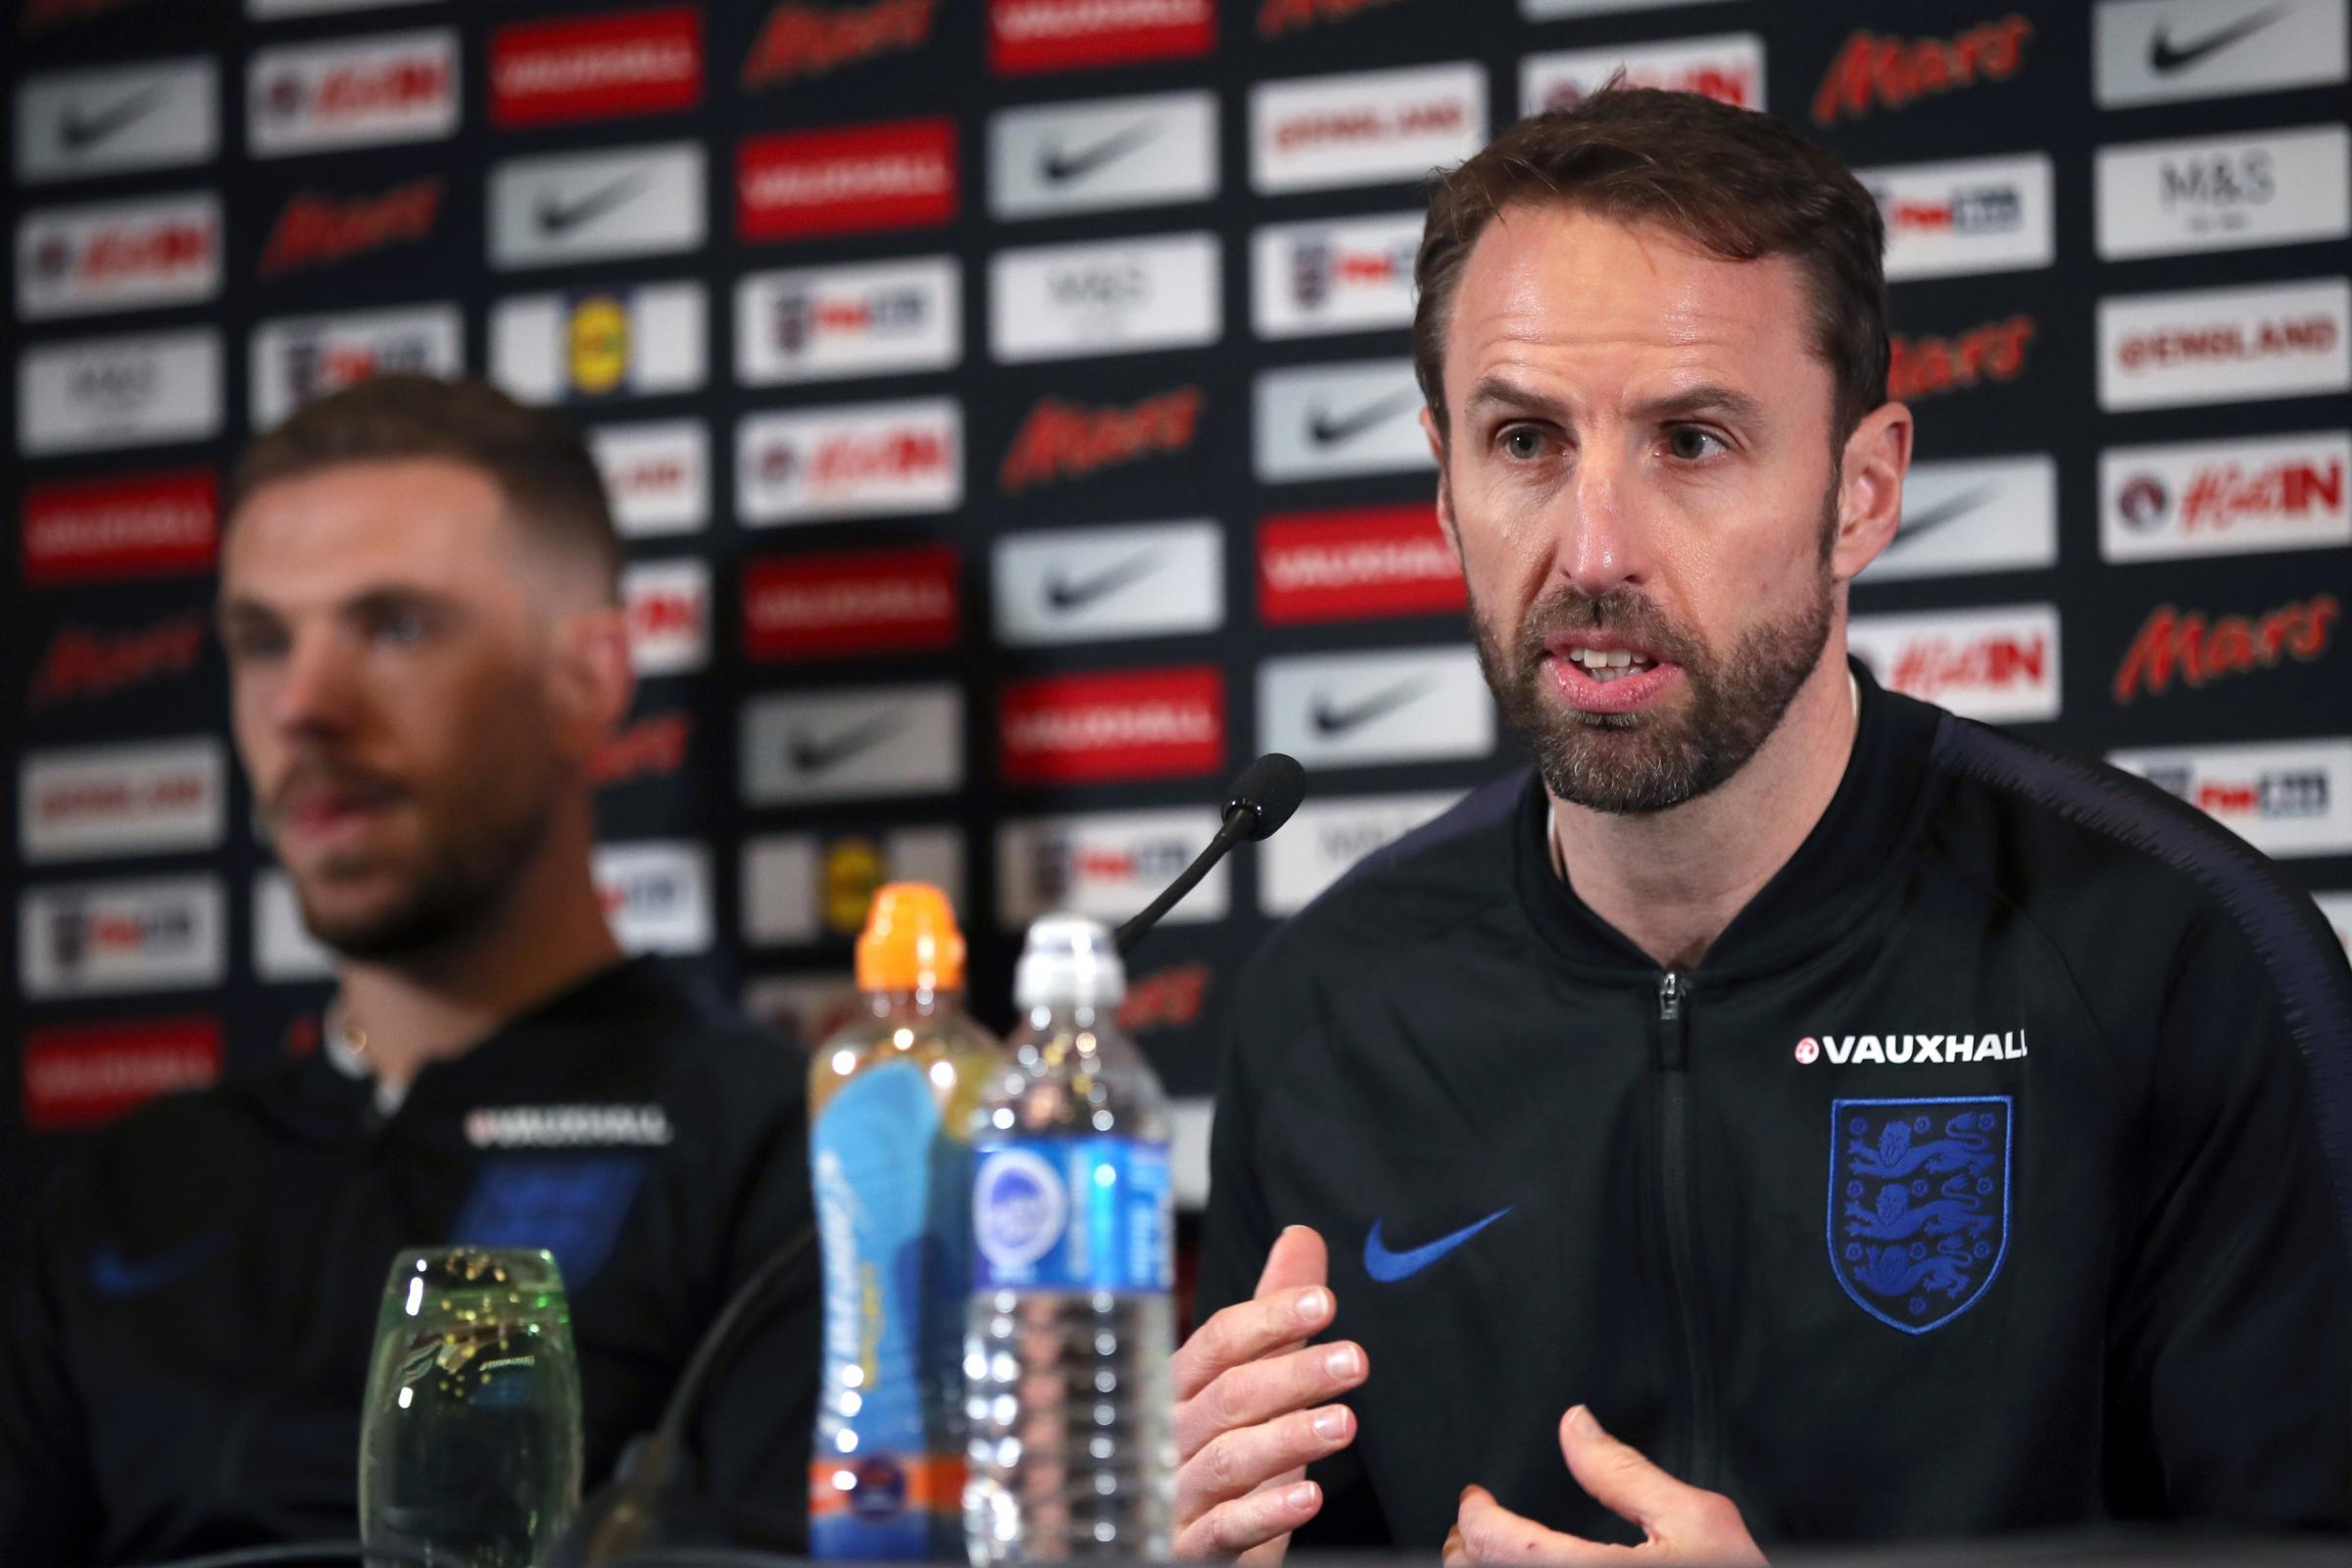 England manager Gareth Southgate, right, wants Jordan Henderson to lead Liverpool to European glory (Nick Potts/PA)